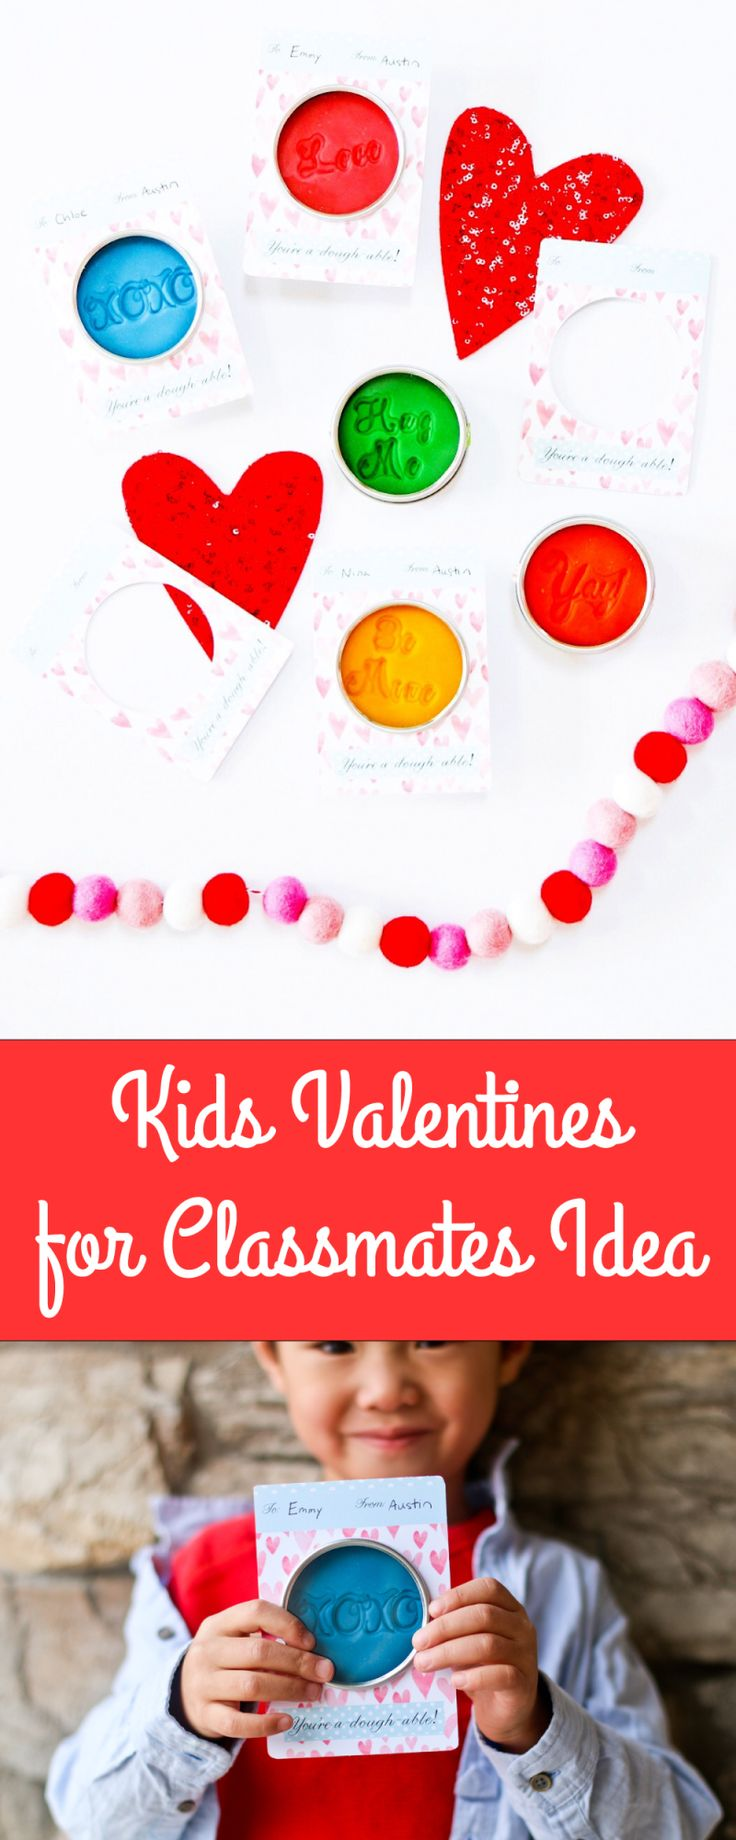 A Valentine's Day Kids Gift Idea for classmates.